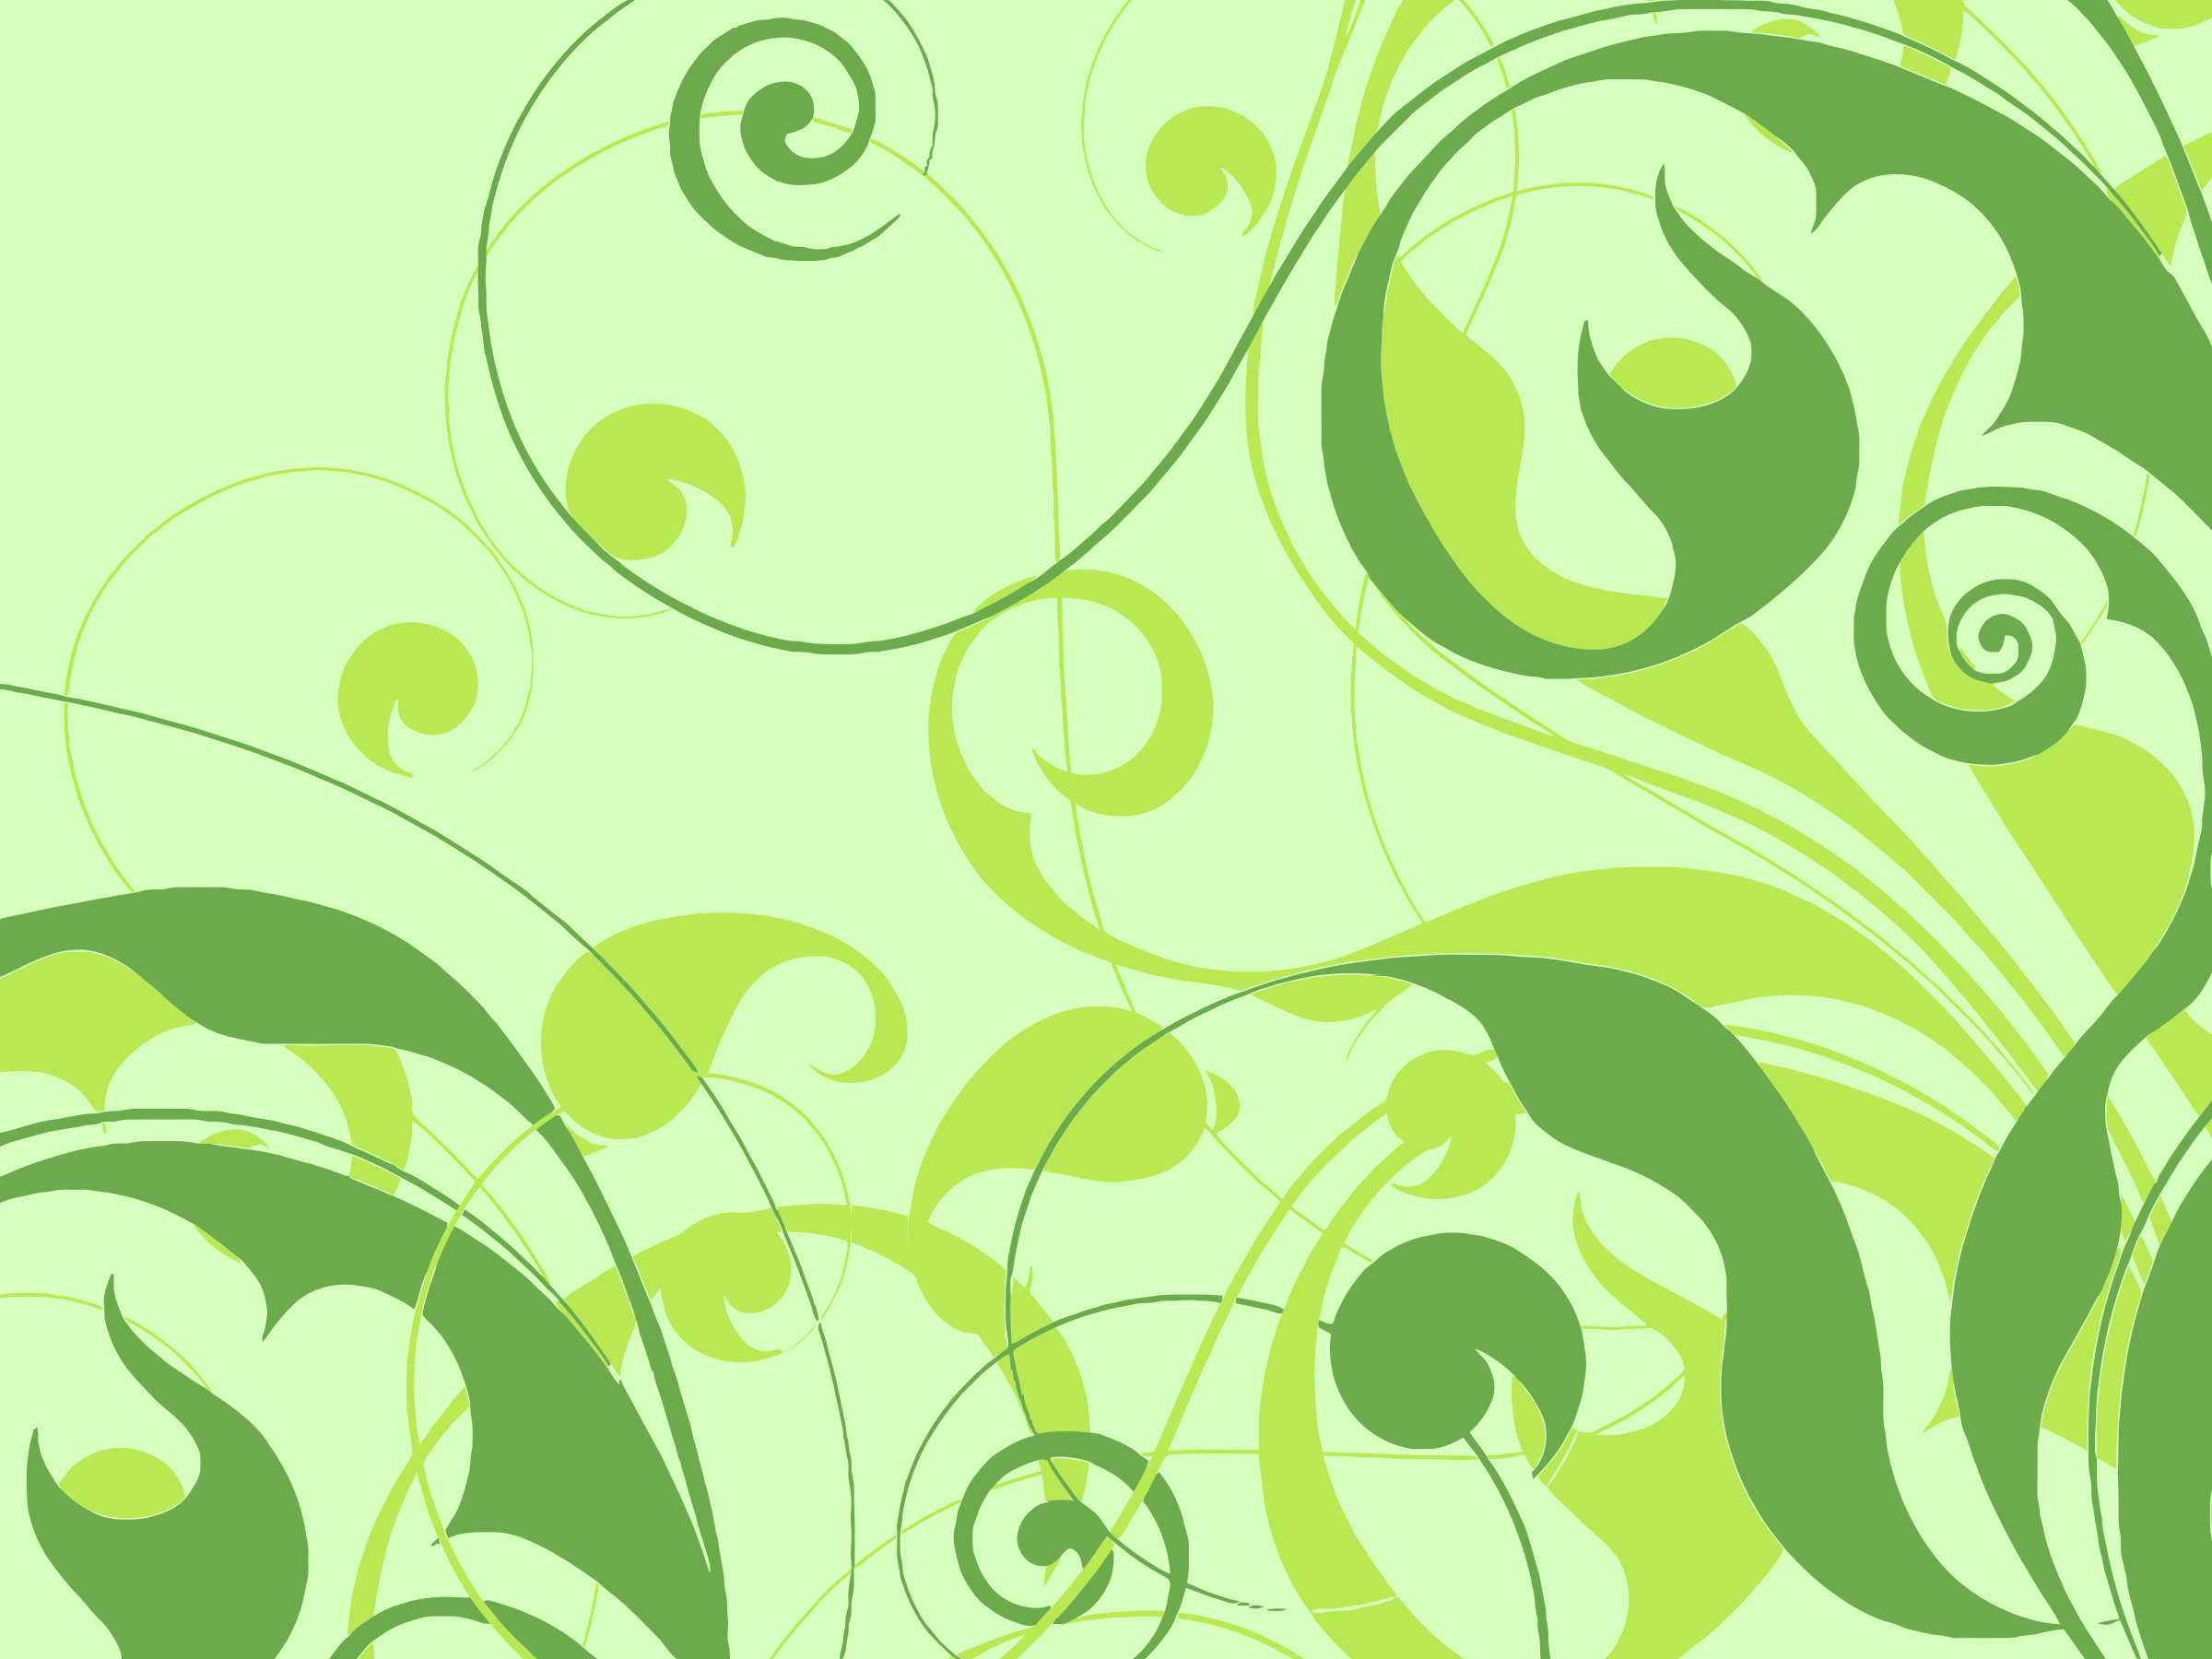 Flourish Background soft by skarmoutsosv